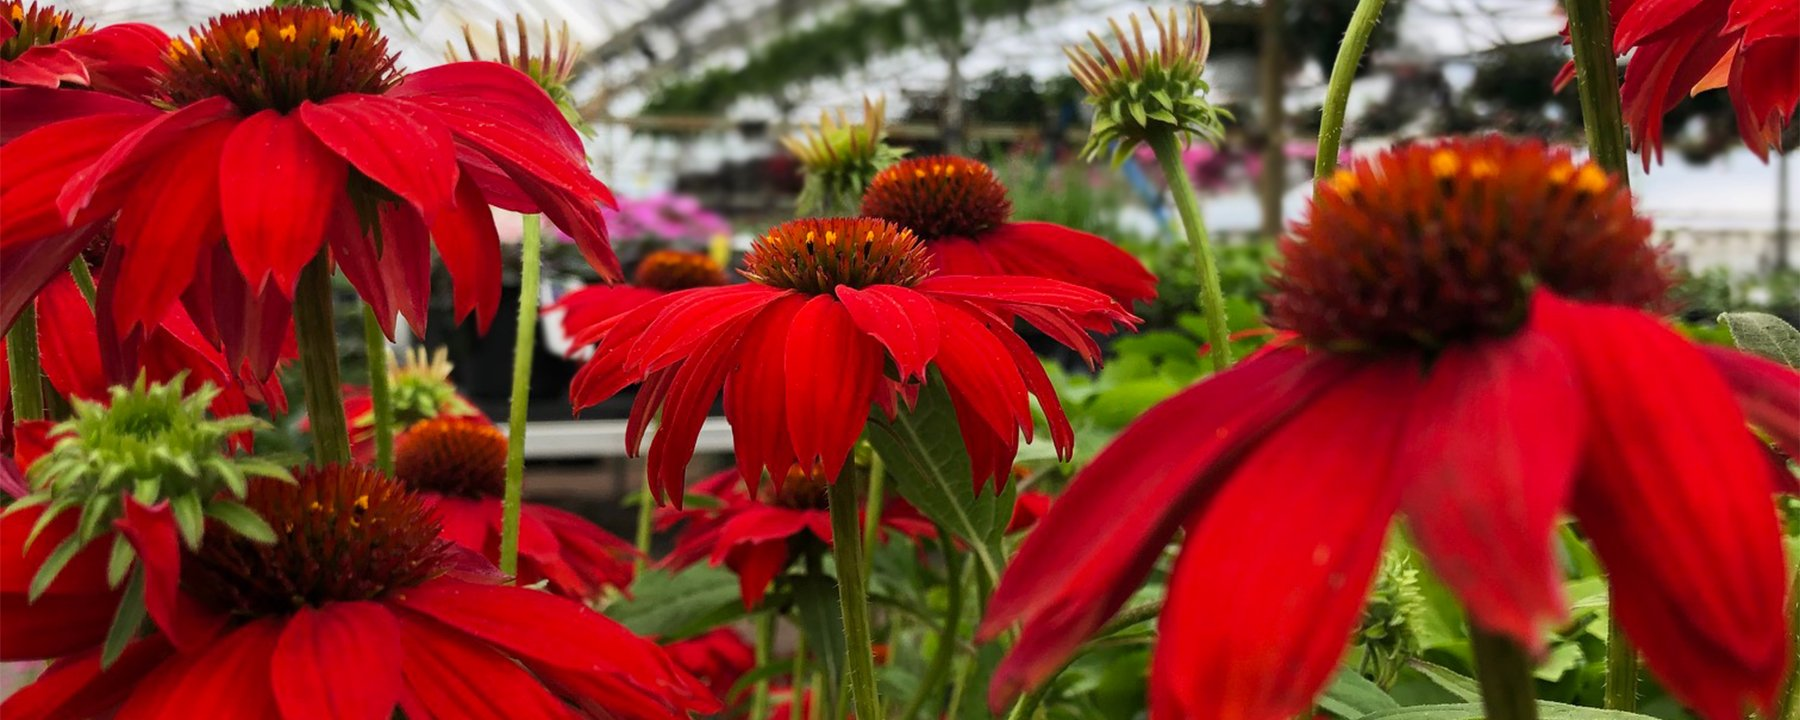 sombrero echinacea in the greenhouse at Kentwood Flowerland